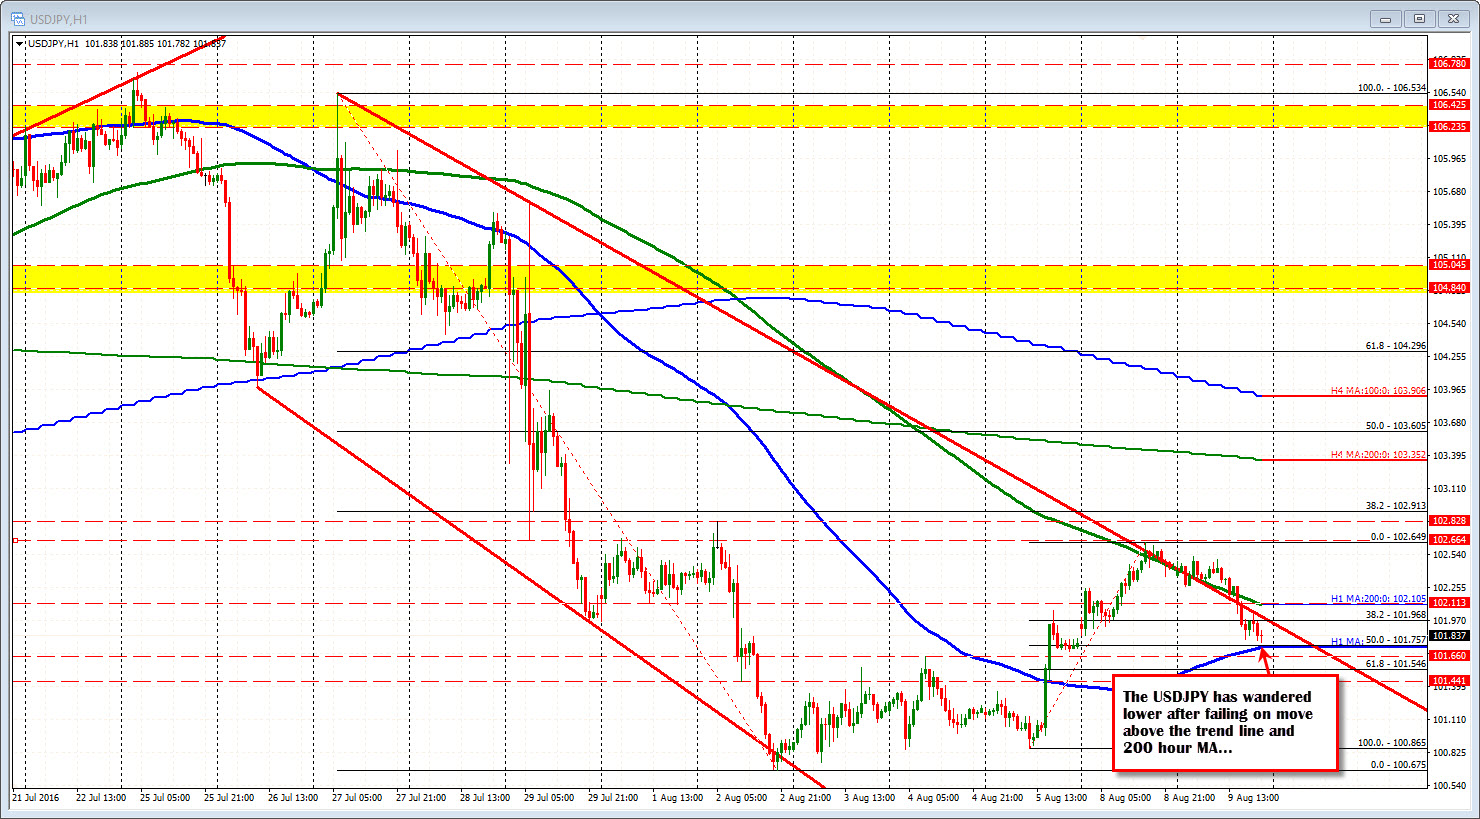 Forex trading: A technical (re)view of the major currency pairs - Nasdaq.com